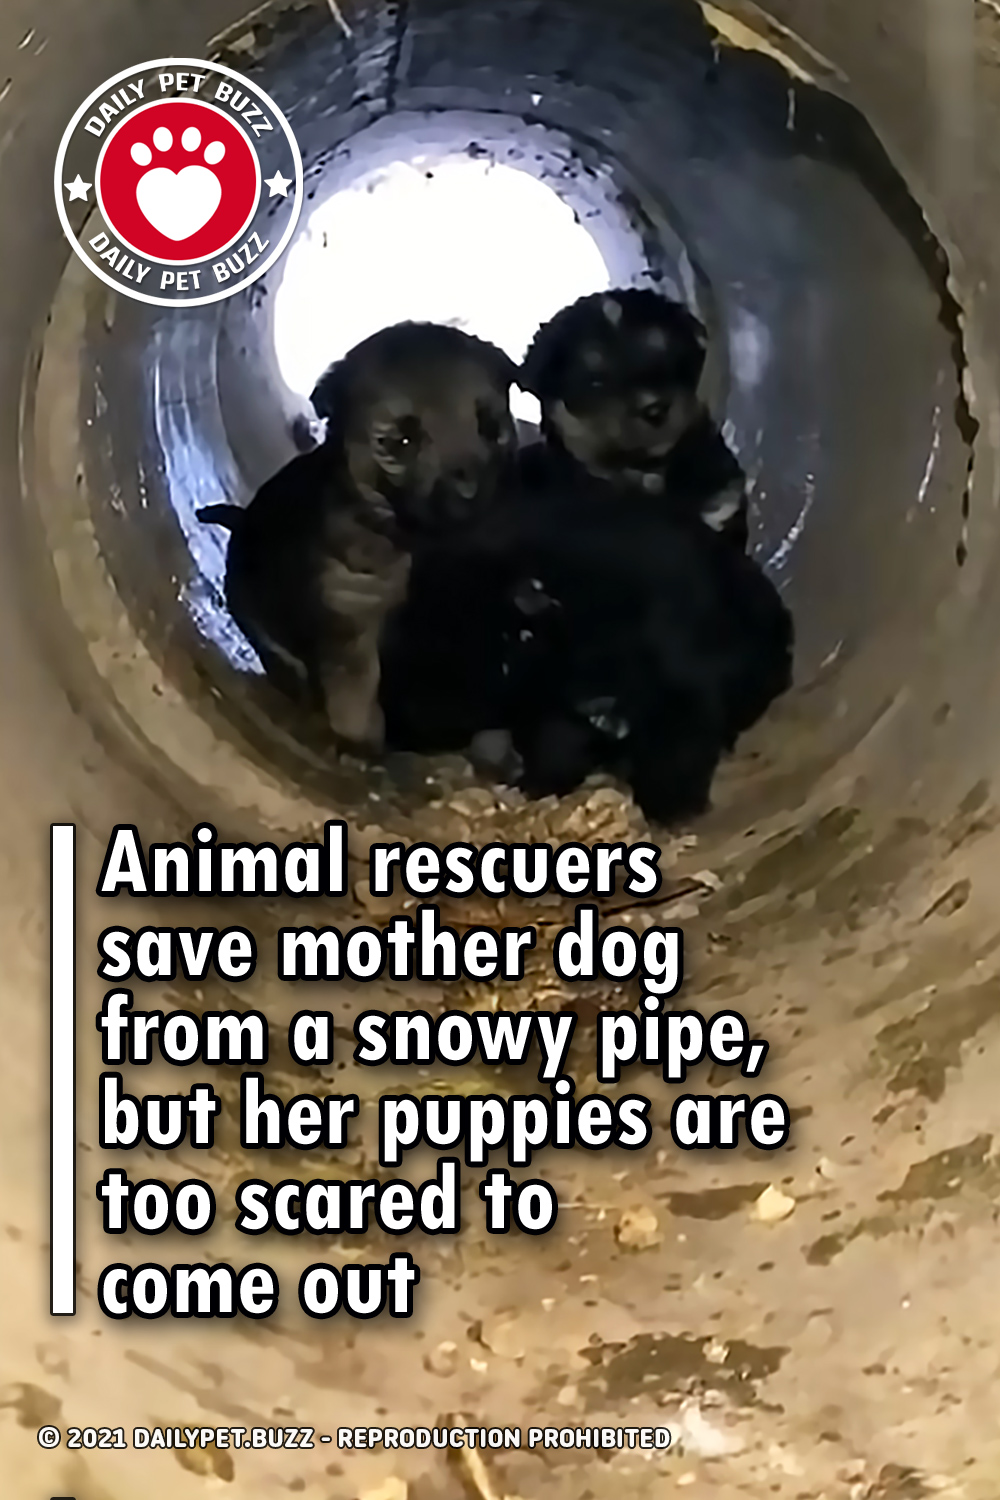 Animal rescuers save mother dog from a snowy pipe, but her puppies are too scared to come out